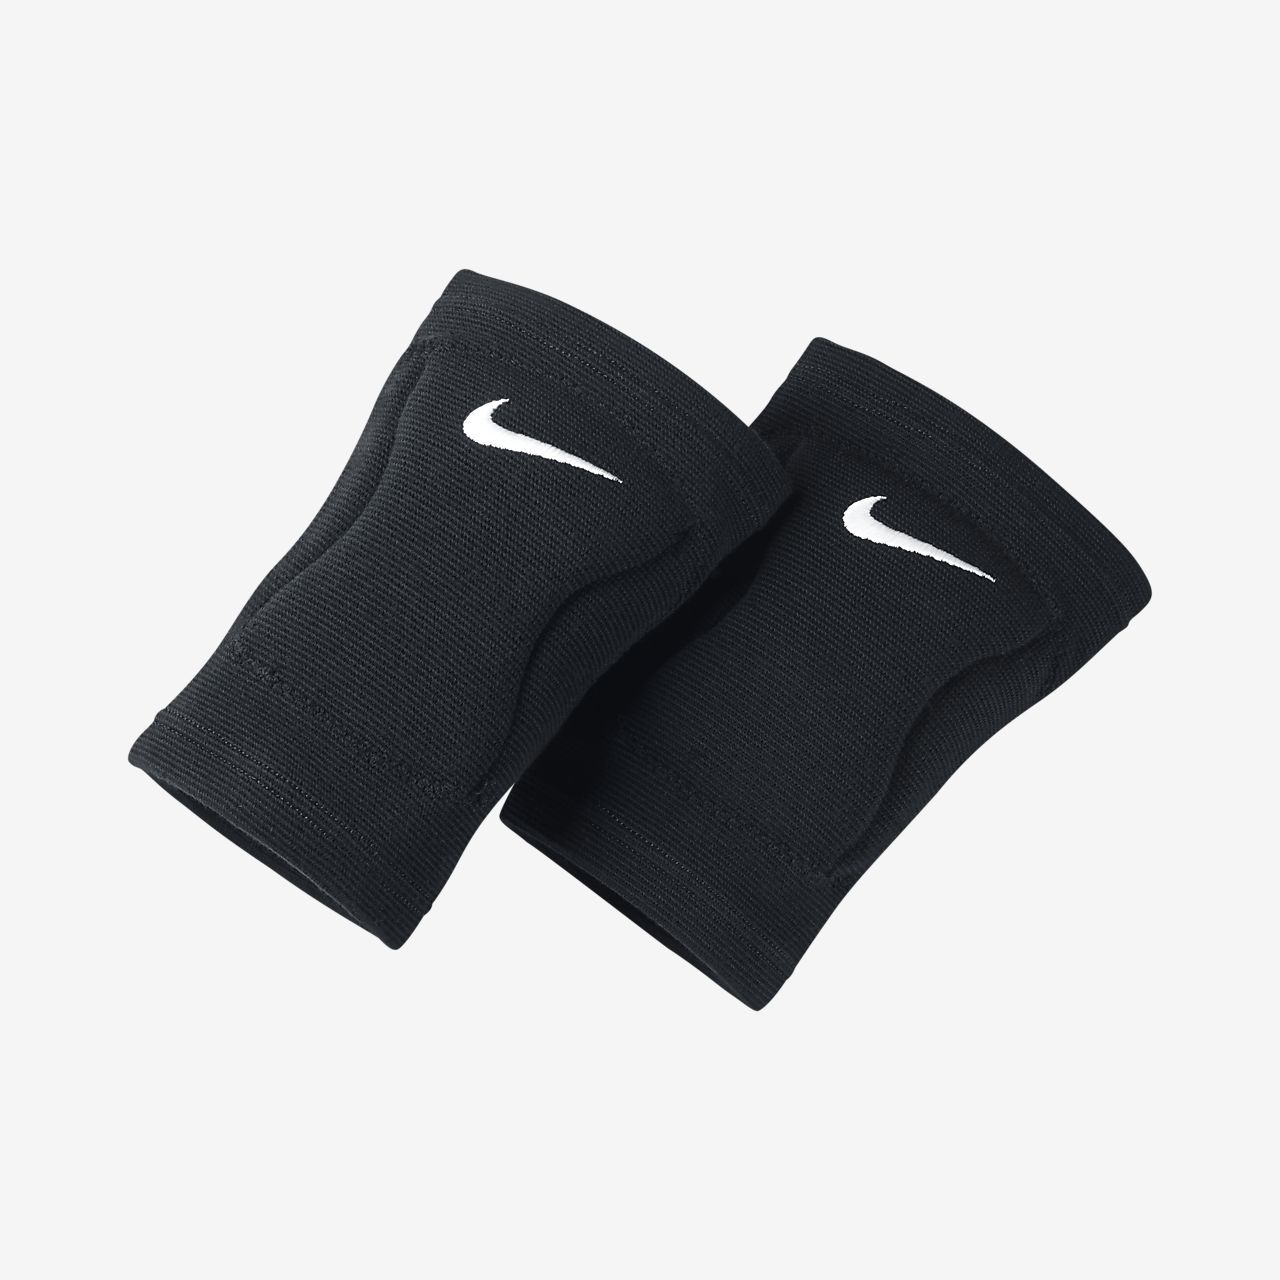 Nike Streak Volleyball Knee Pads 1 Pair In 2020 Volleyball Knee Pads Volleyball Outfits Volleyball Gear